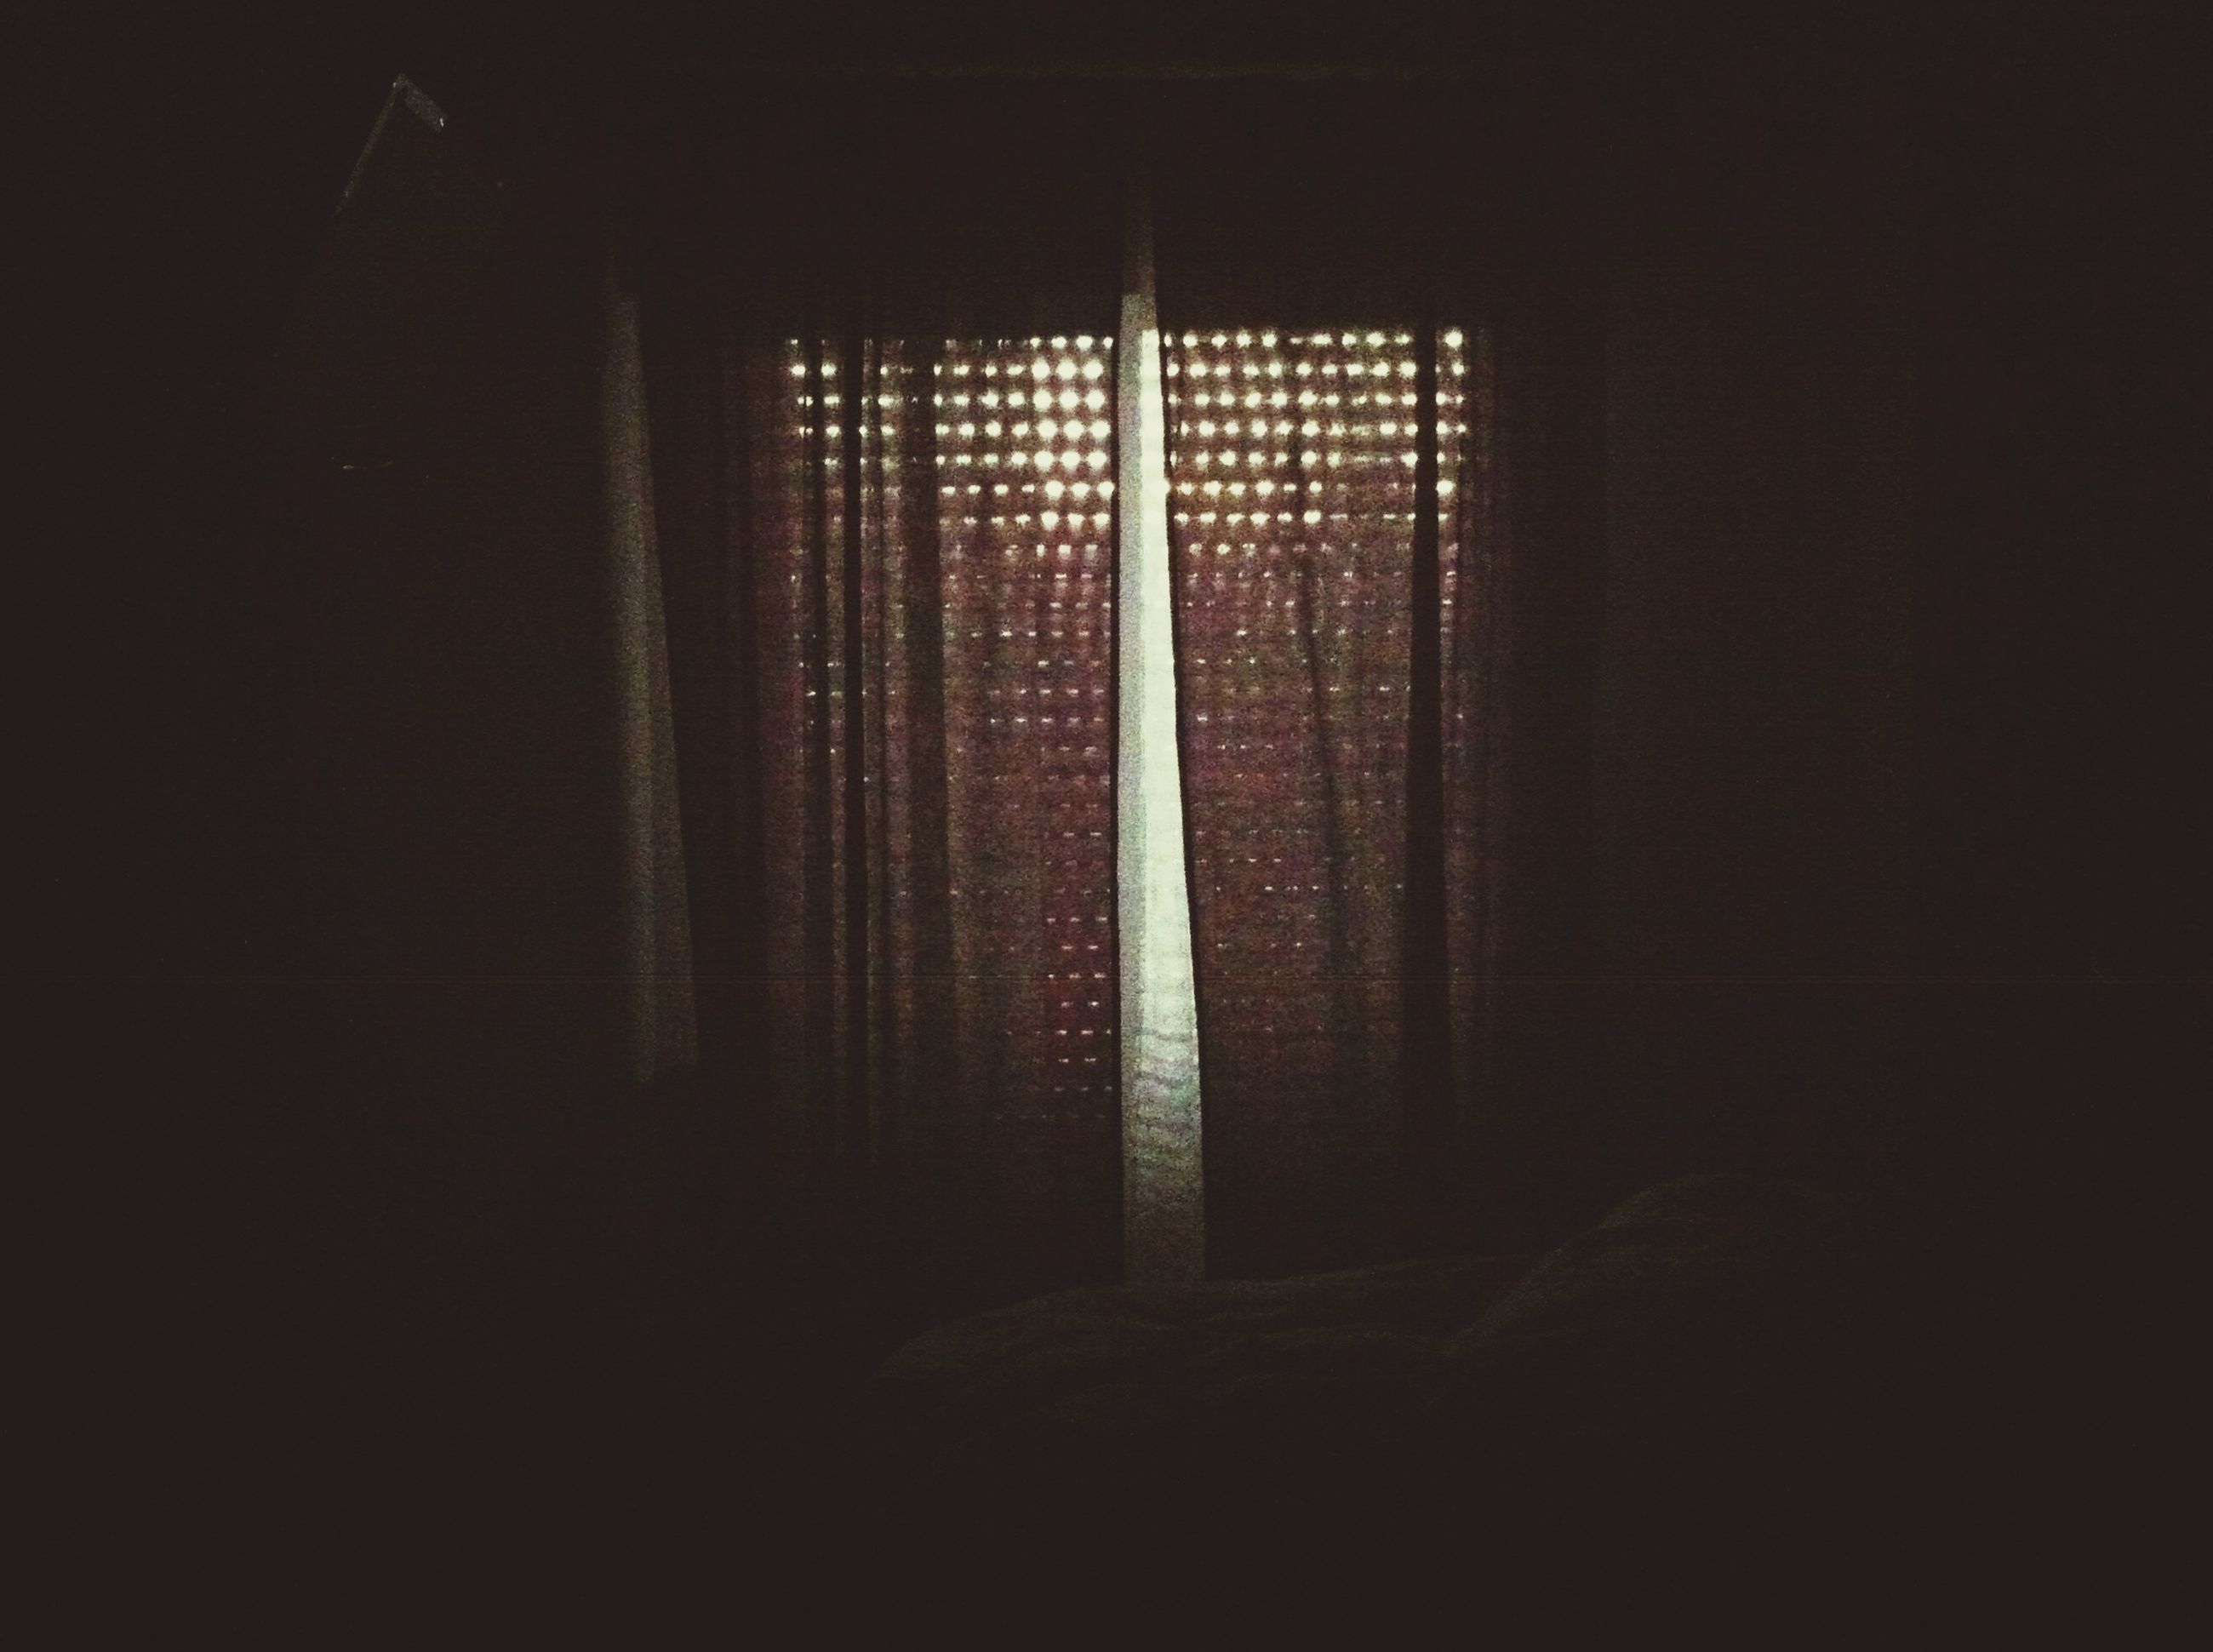 indoors, window, architecture, built structure, dark, door, home interior, wall - building feature, closed, house, sunlight, shadow, no people, wall, entrance, absence, empty, room, curtain, doorway